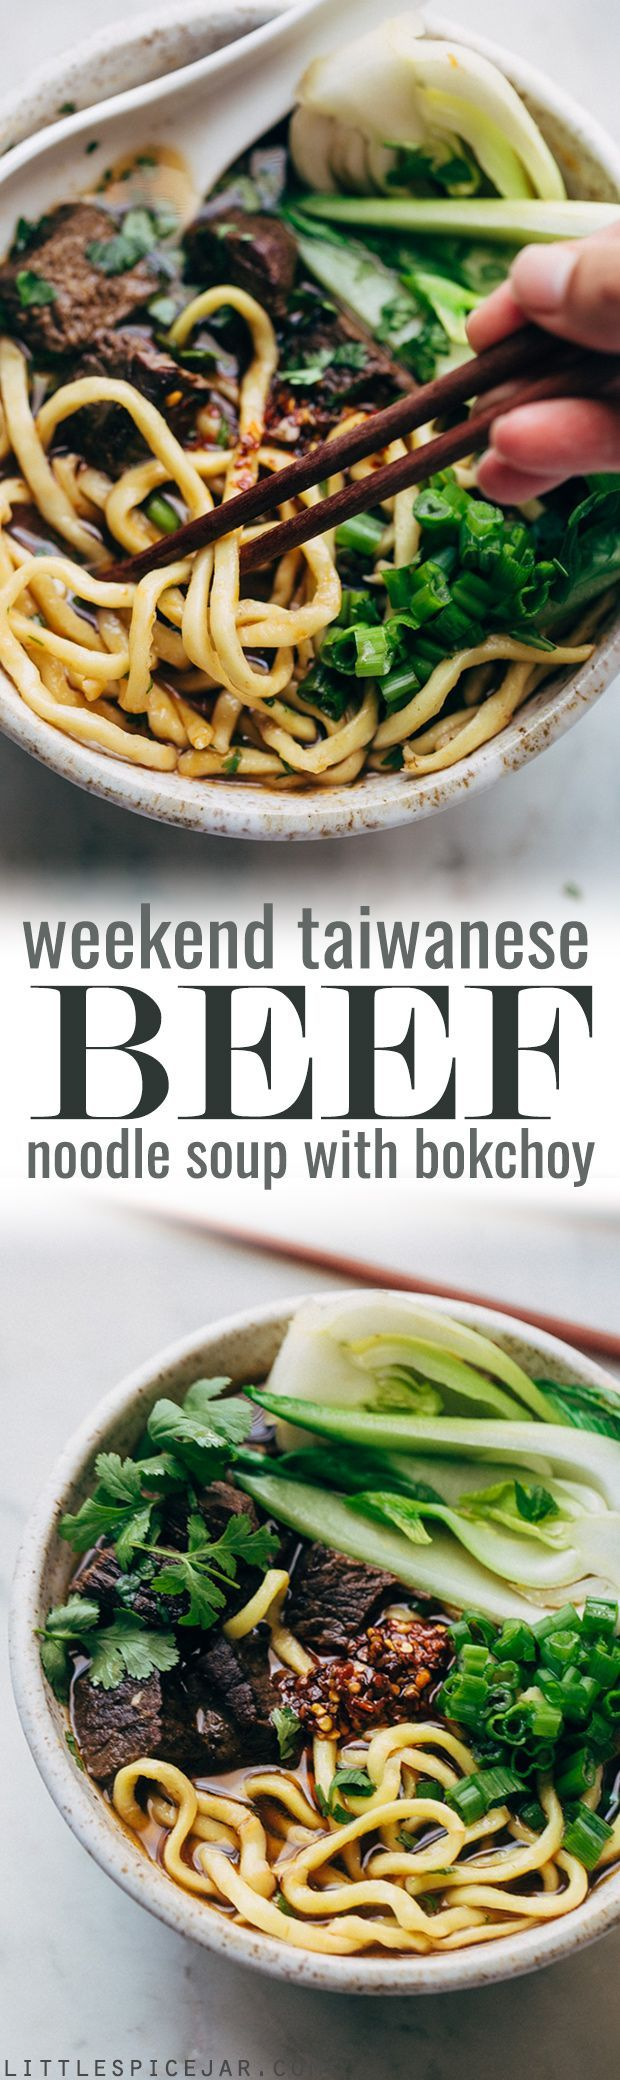 Comfy Cozy Taiwanese Beef Noodle Soup - thick and chewy noodles in a homemade. slow simmered broth with tons of tender beef and fresh greens! #beefnoodlesoup #beefsoup #taiwanesebeefnoodlesoup #asiannoodlesoup | http://Littlespicejar.com